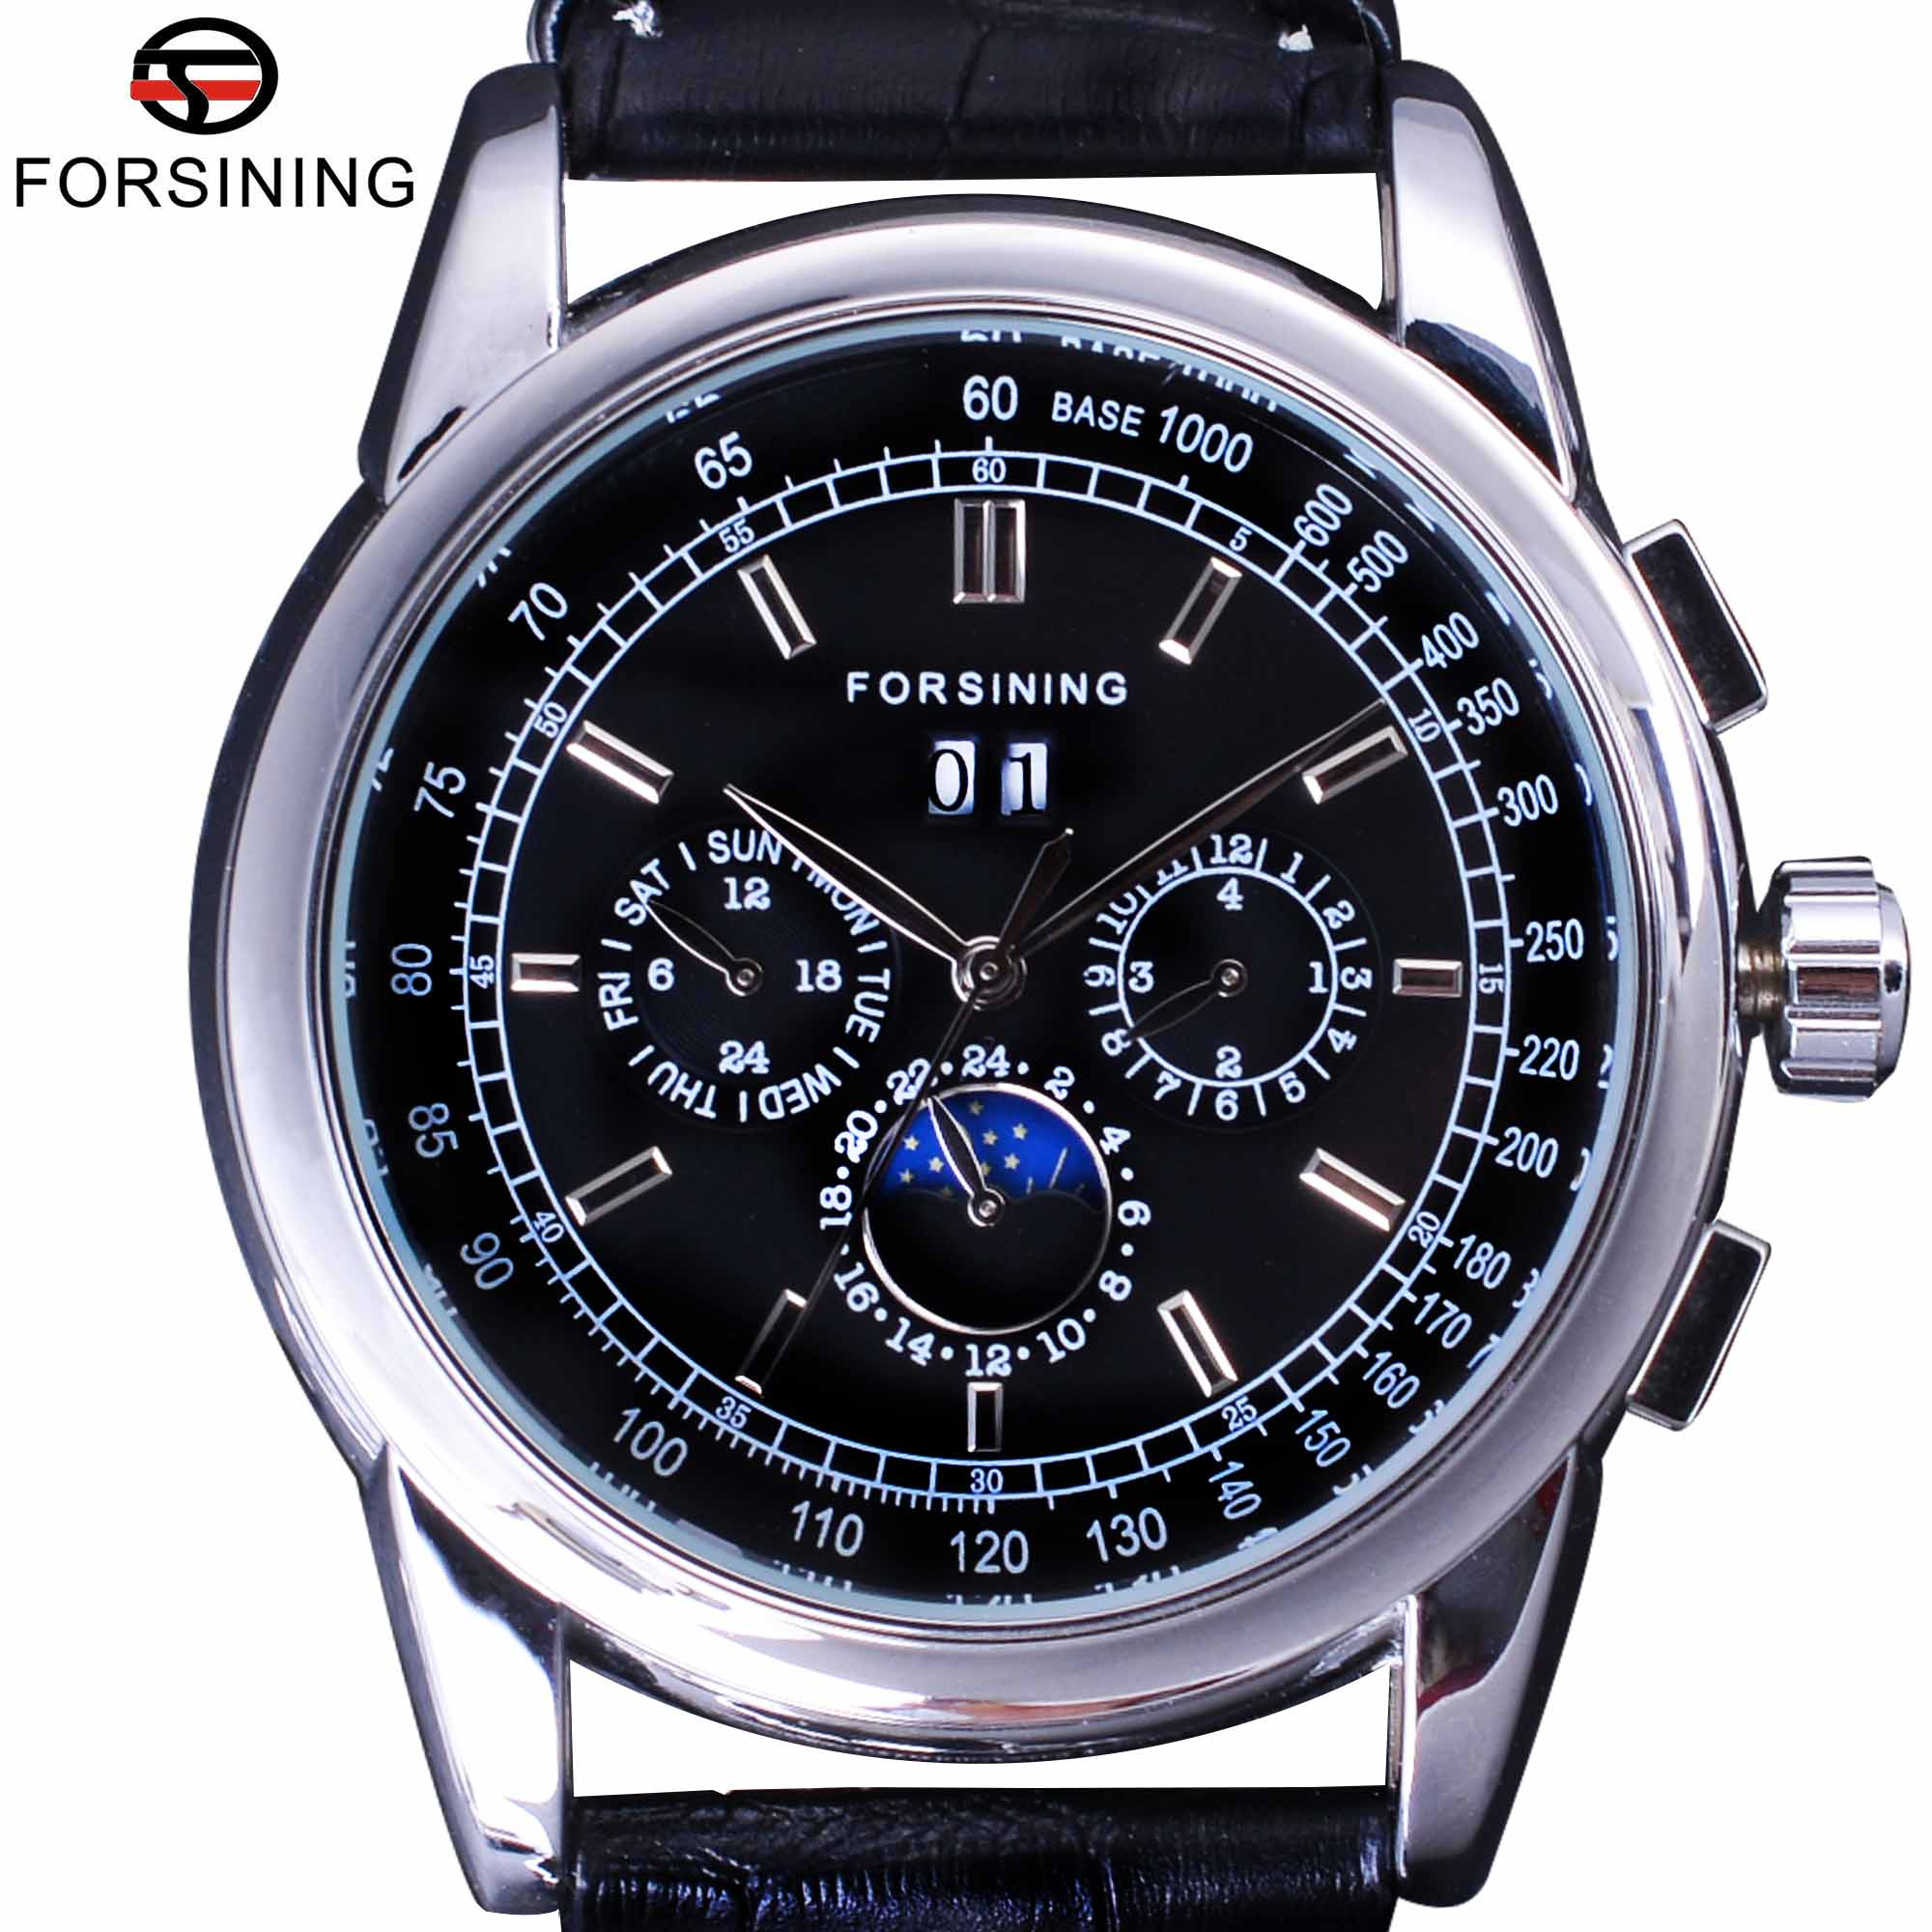 Forsining Luxury Moon Phase Design ShangHai Movement Fashion Casual Wear Automatic Watch Scale Dial Mens Watch Top Brand Luxury daewoo electronics fr 052aixr